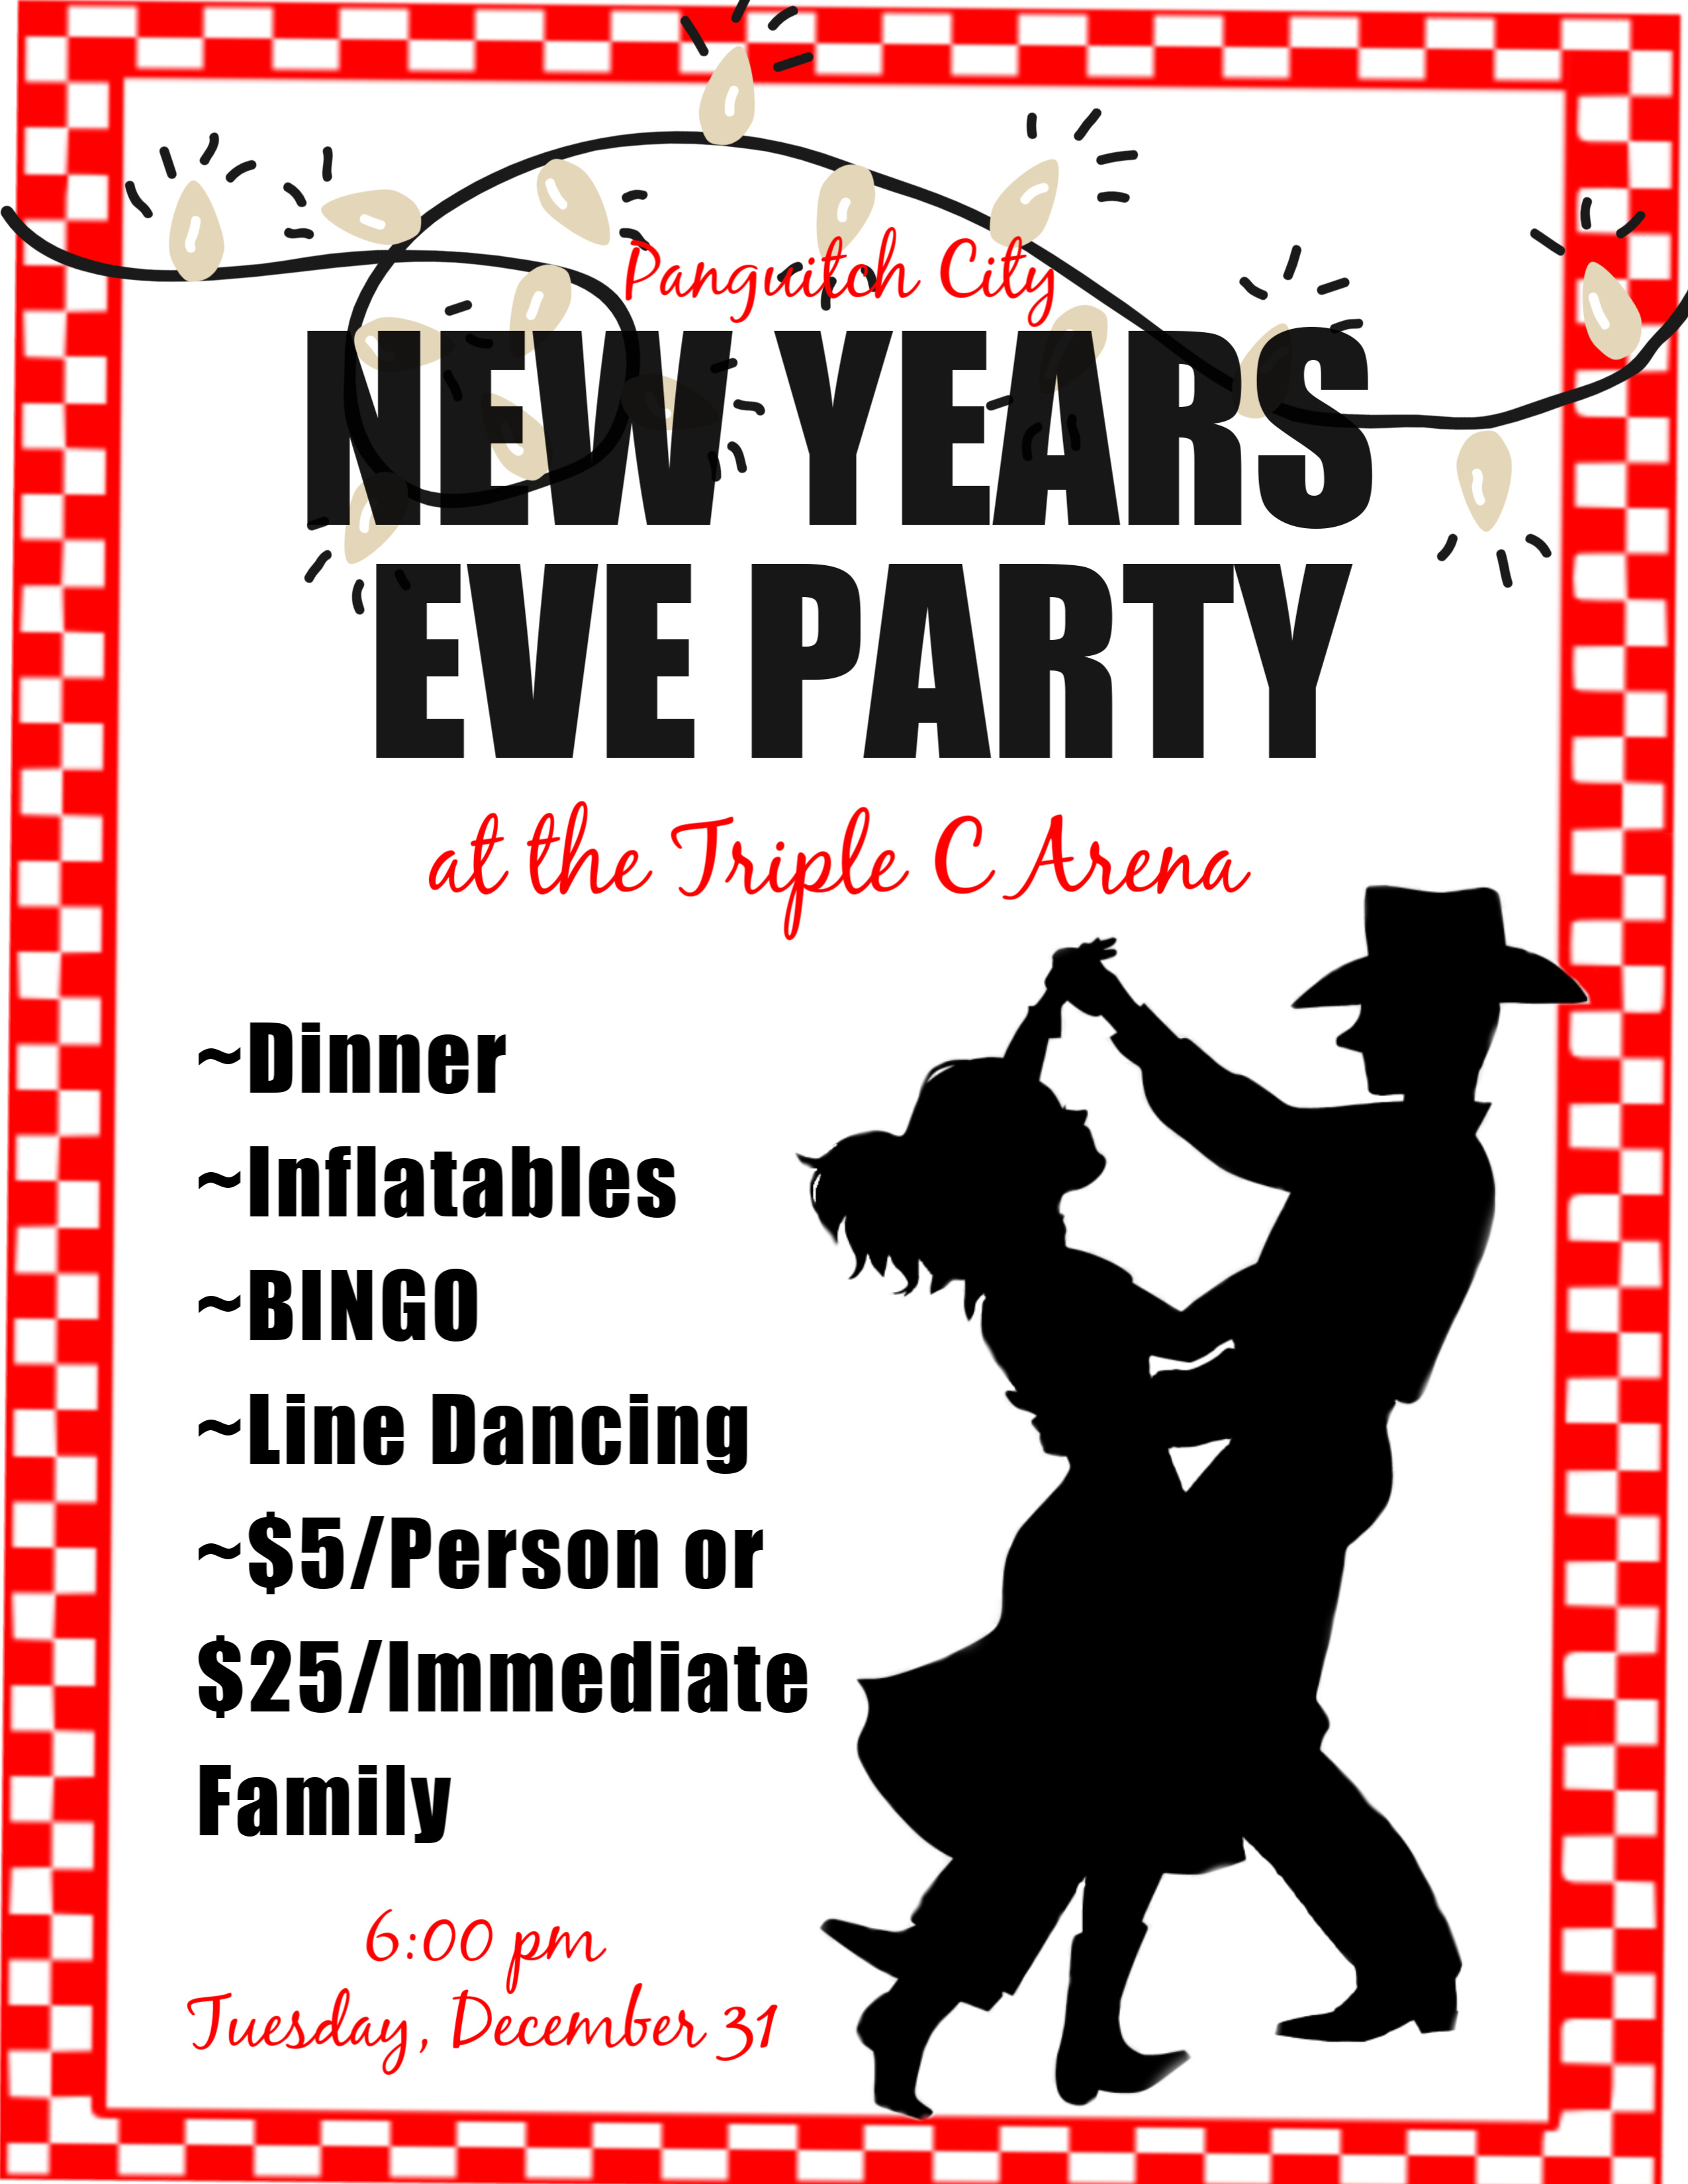 New Years Eve Party @ Triple C Arena